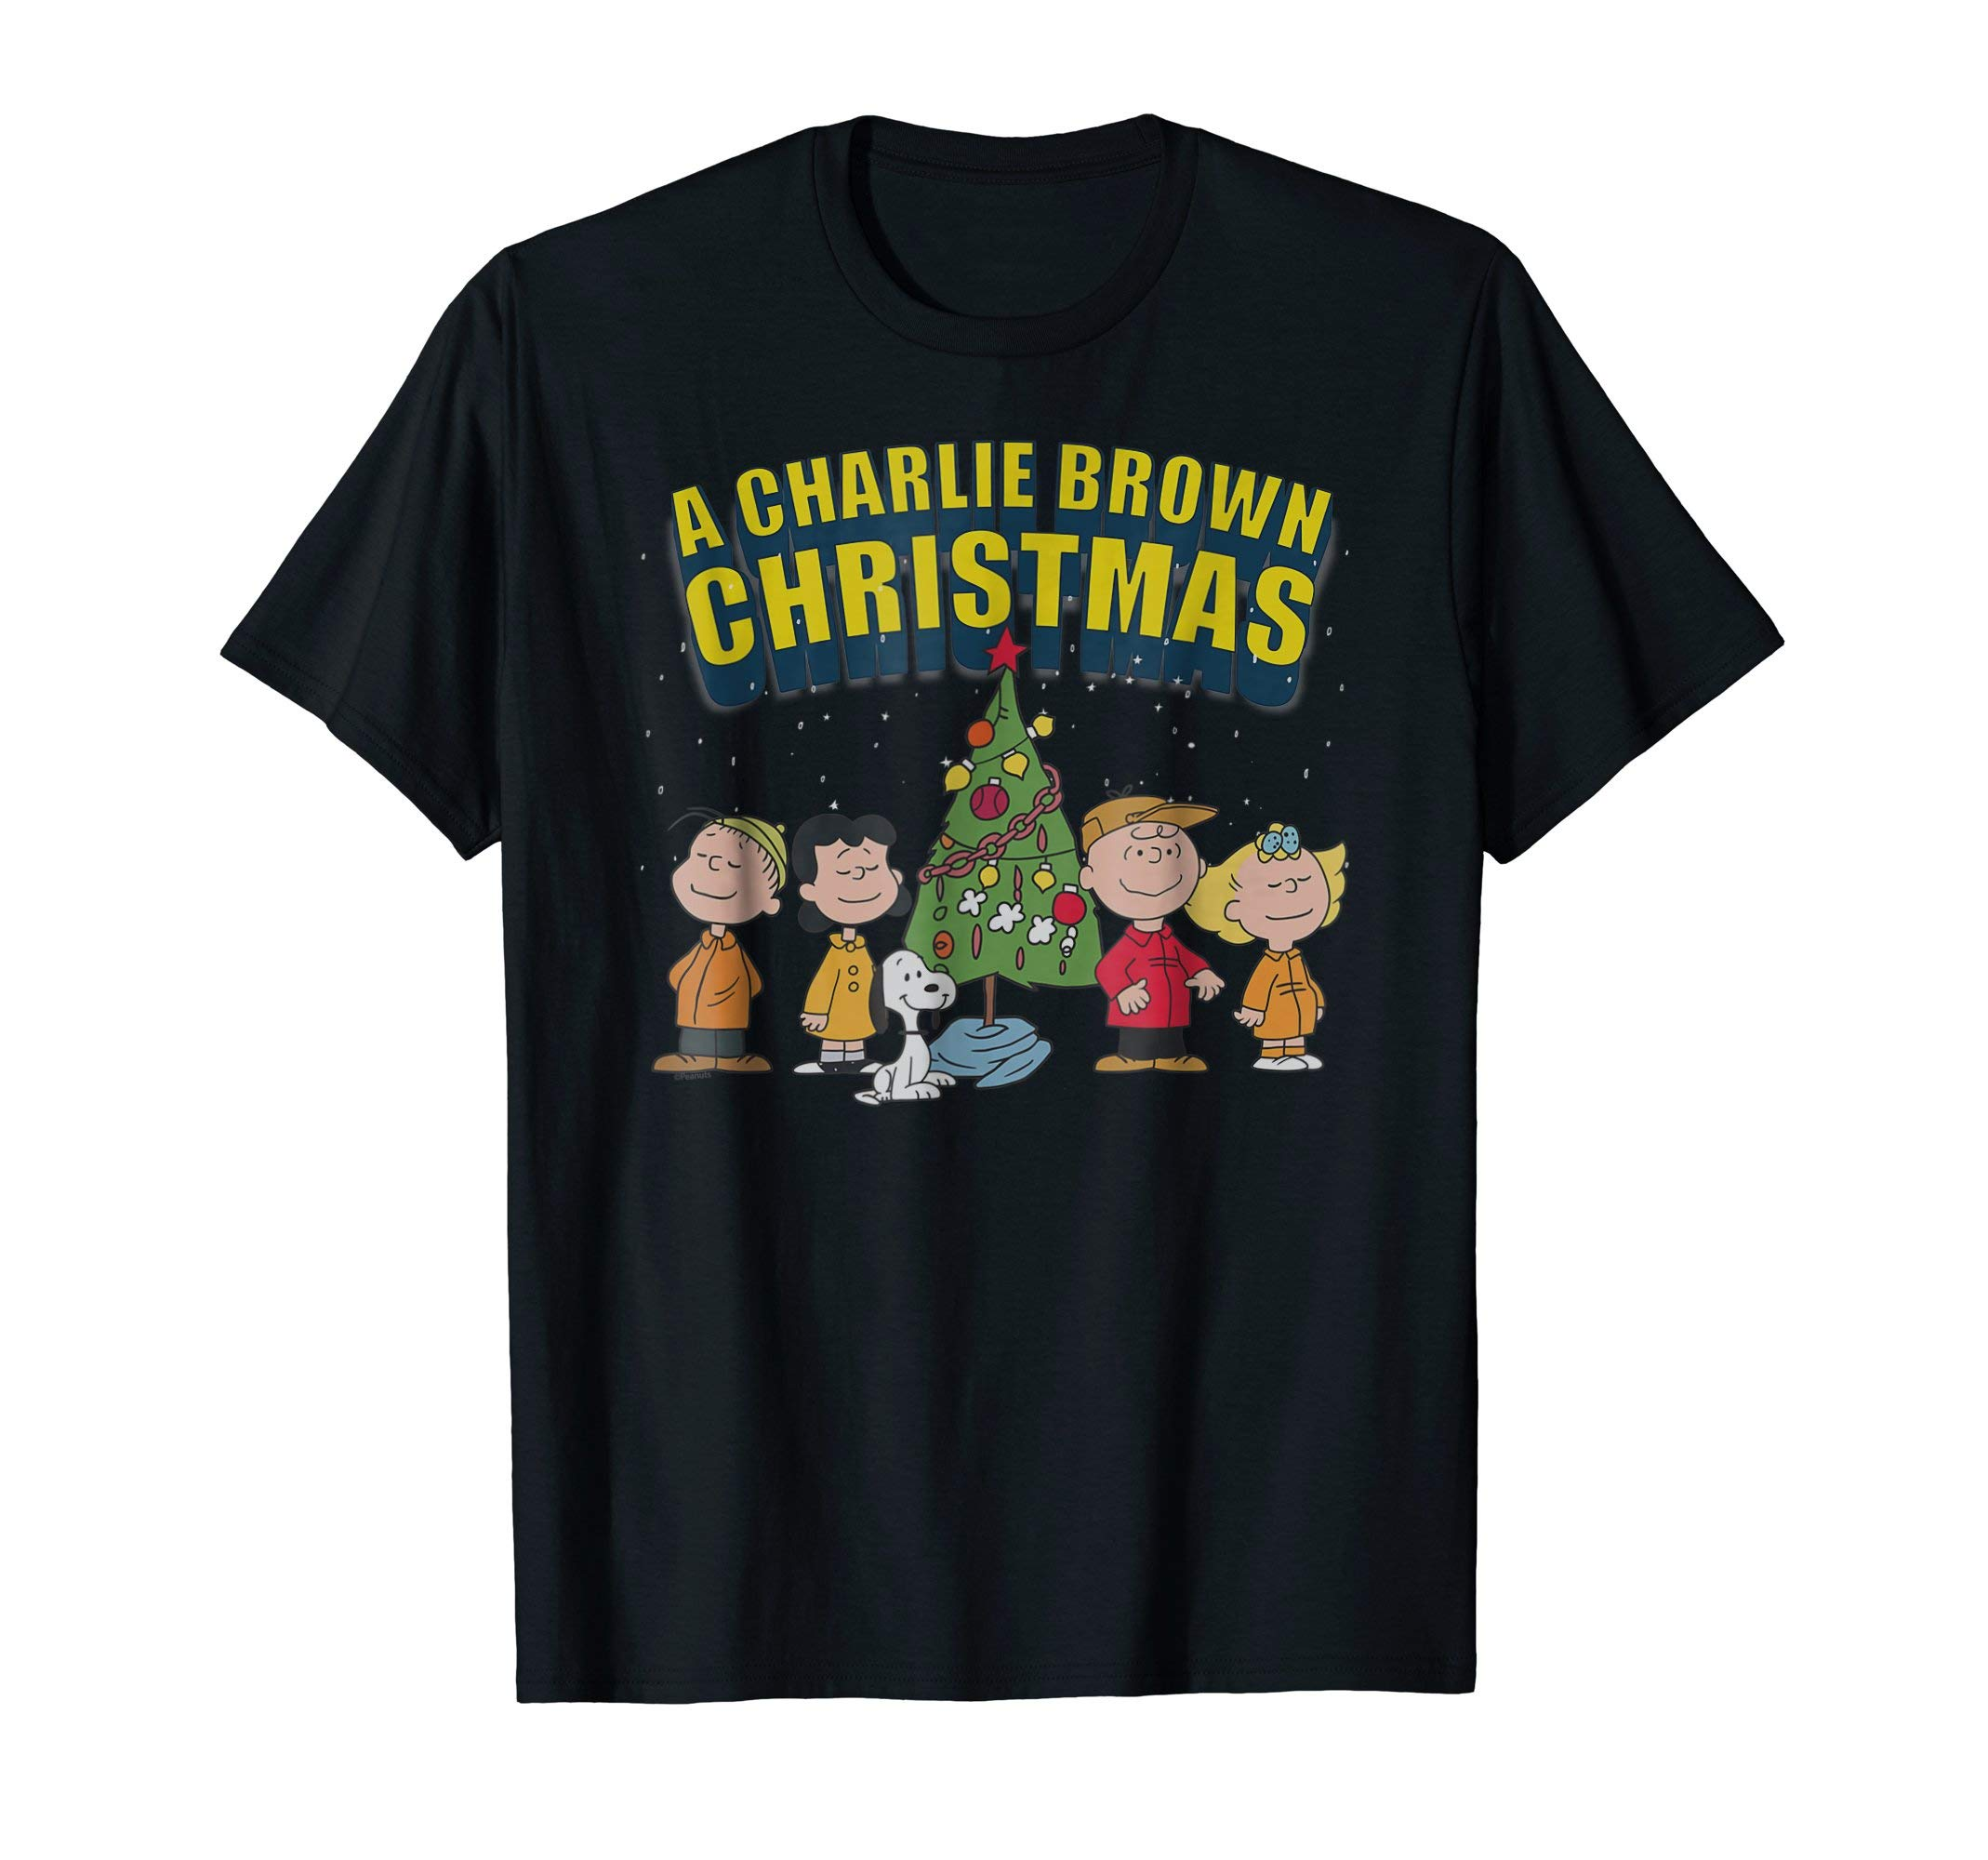 Image of A Charlie Brown Christmas Shirt for Adults and Kids - See More Colors